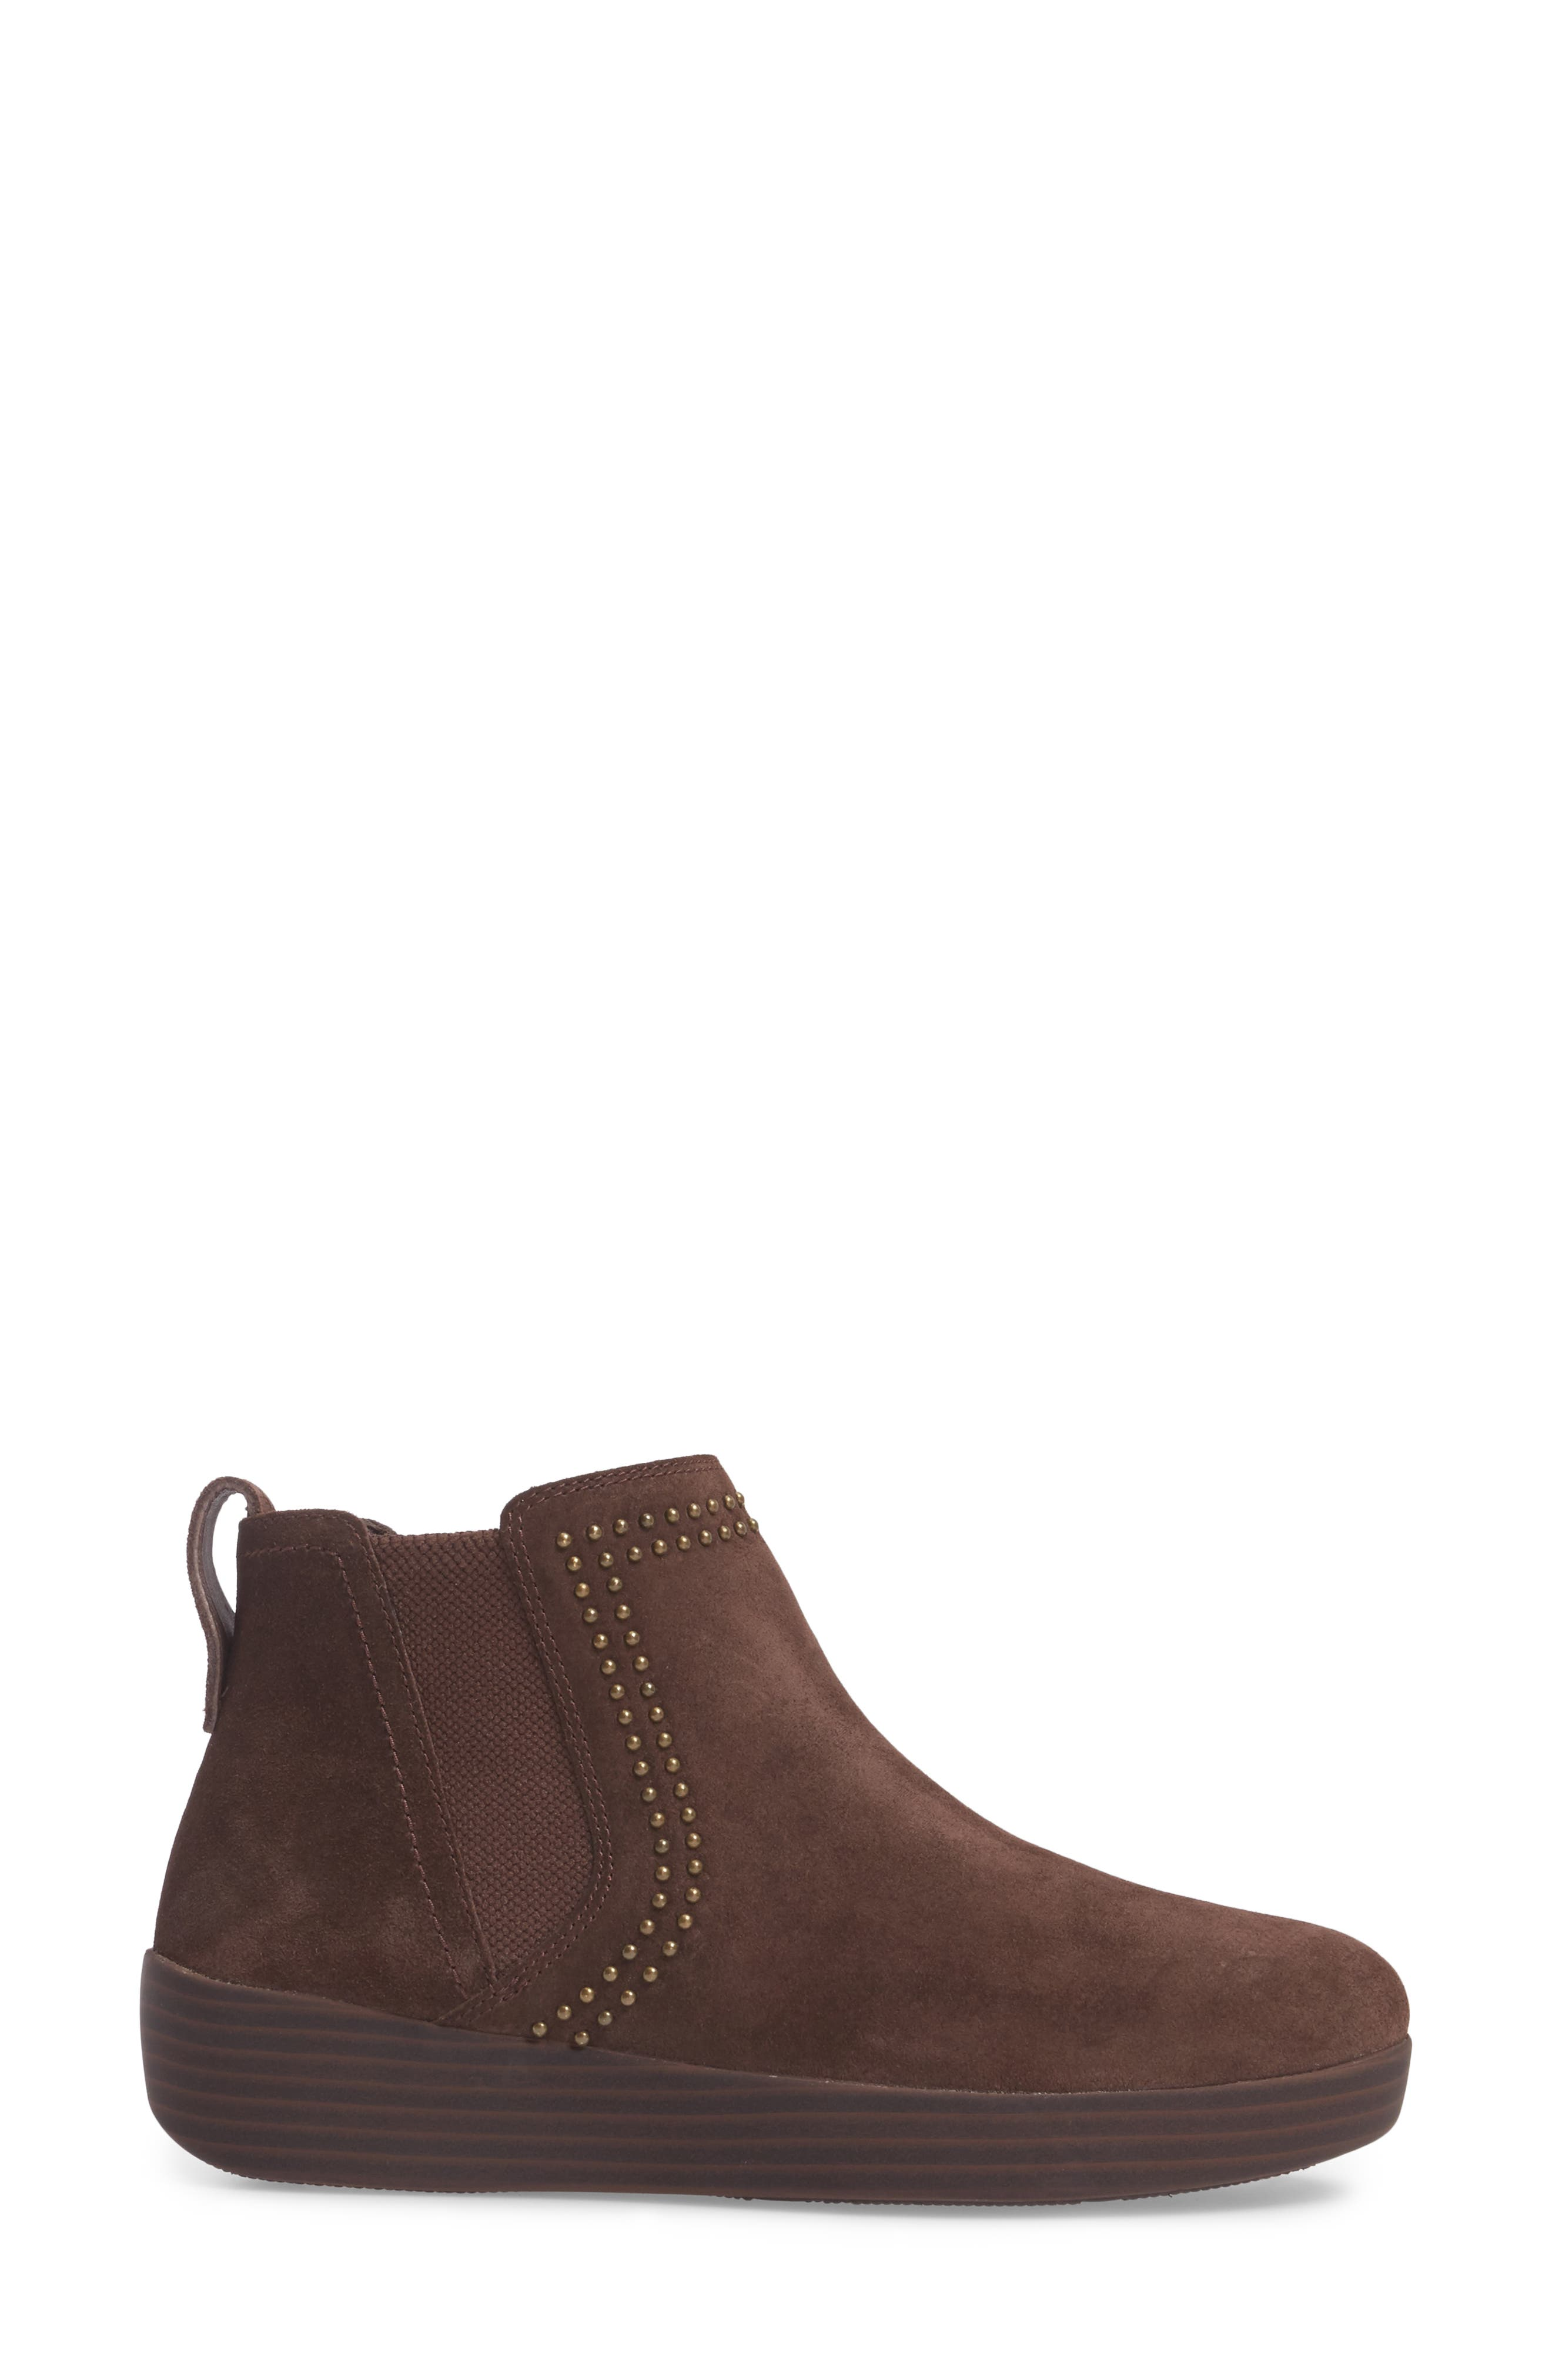 Superchelsea Studded Boot,                             Alternate thumbnail 3, color,                             Chocolate